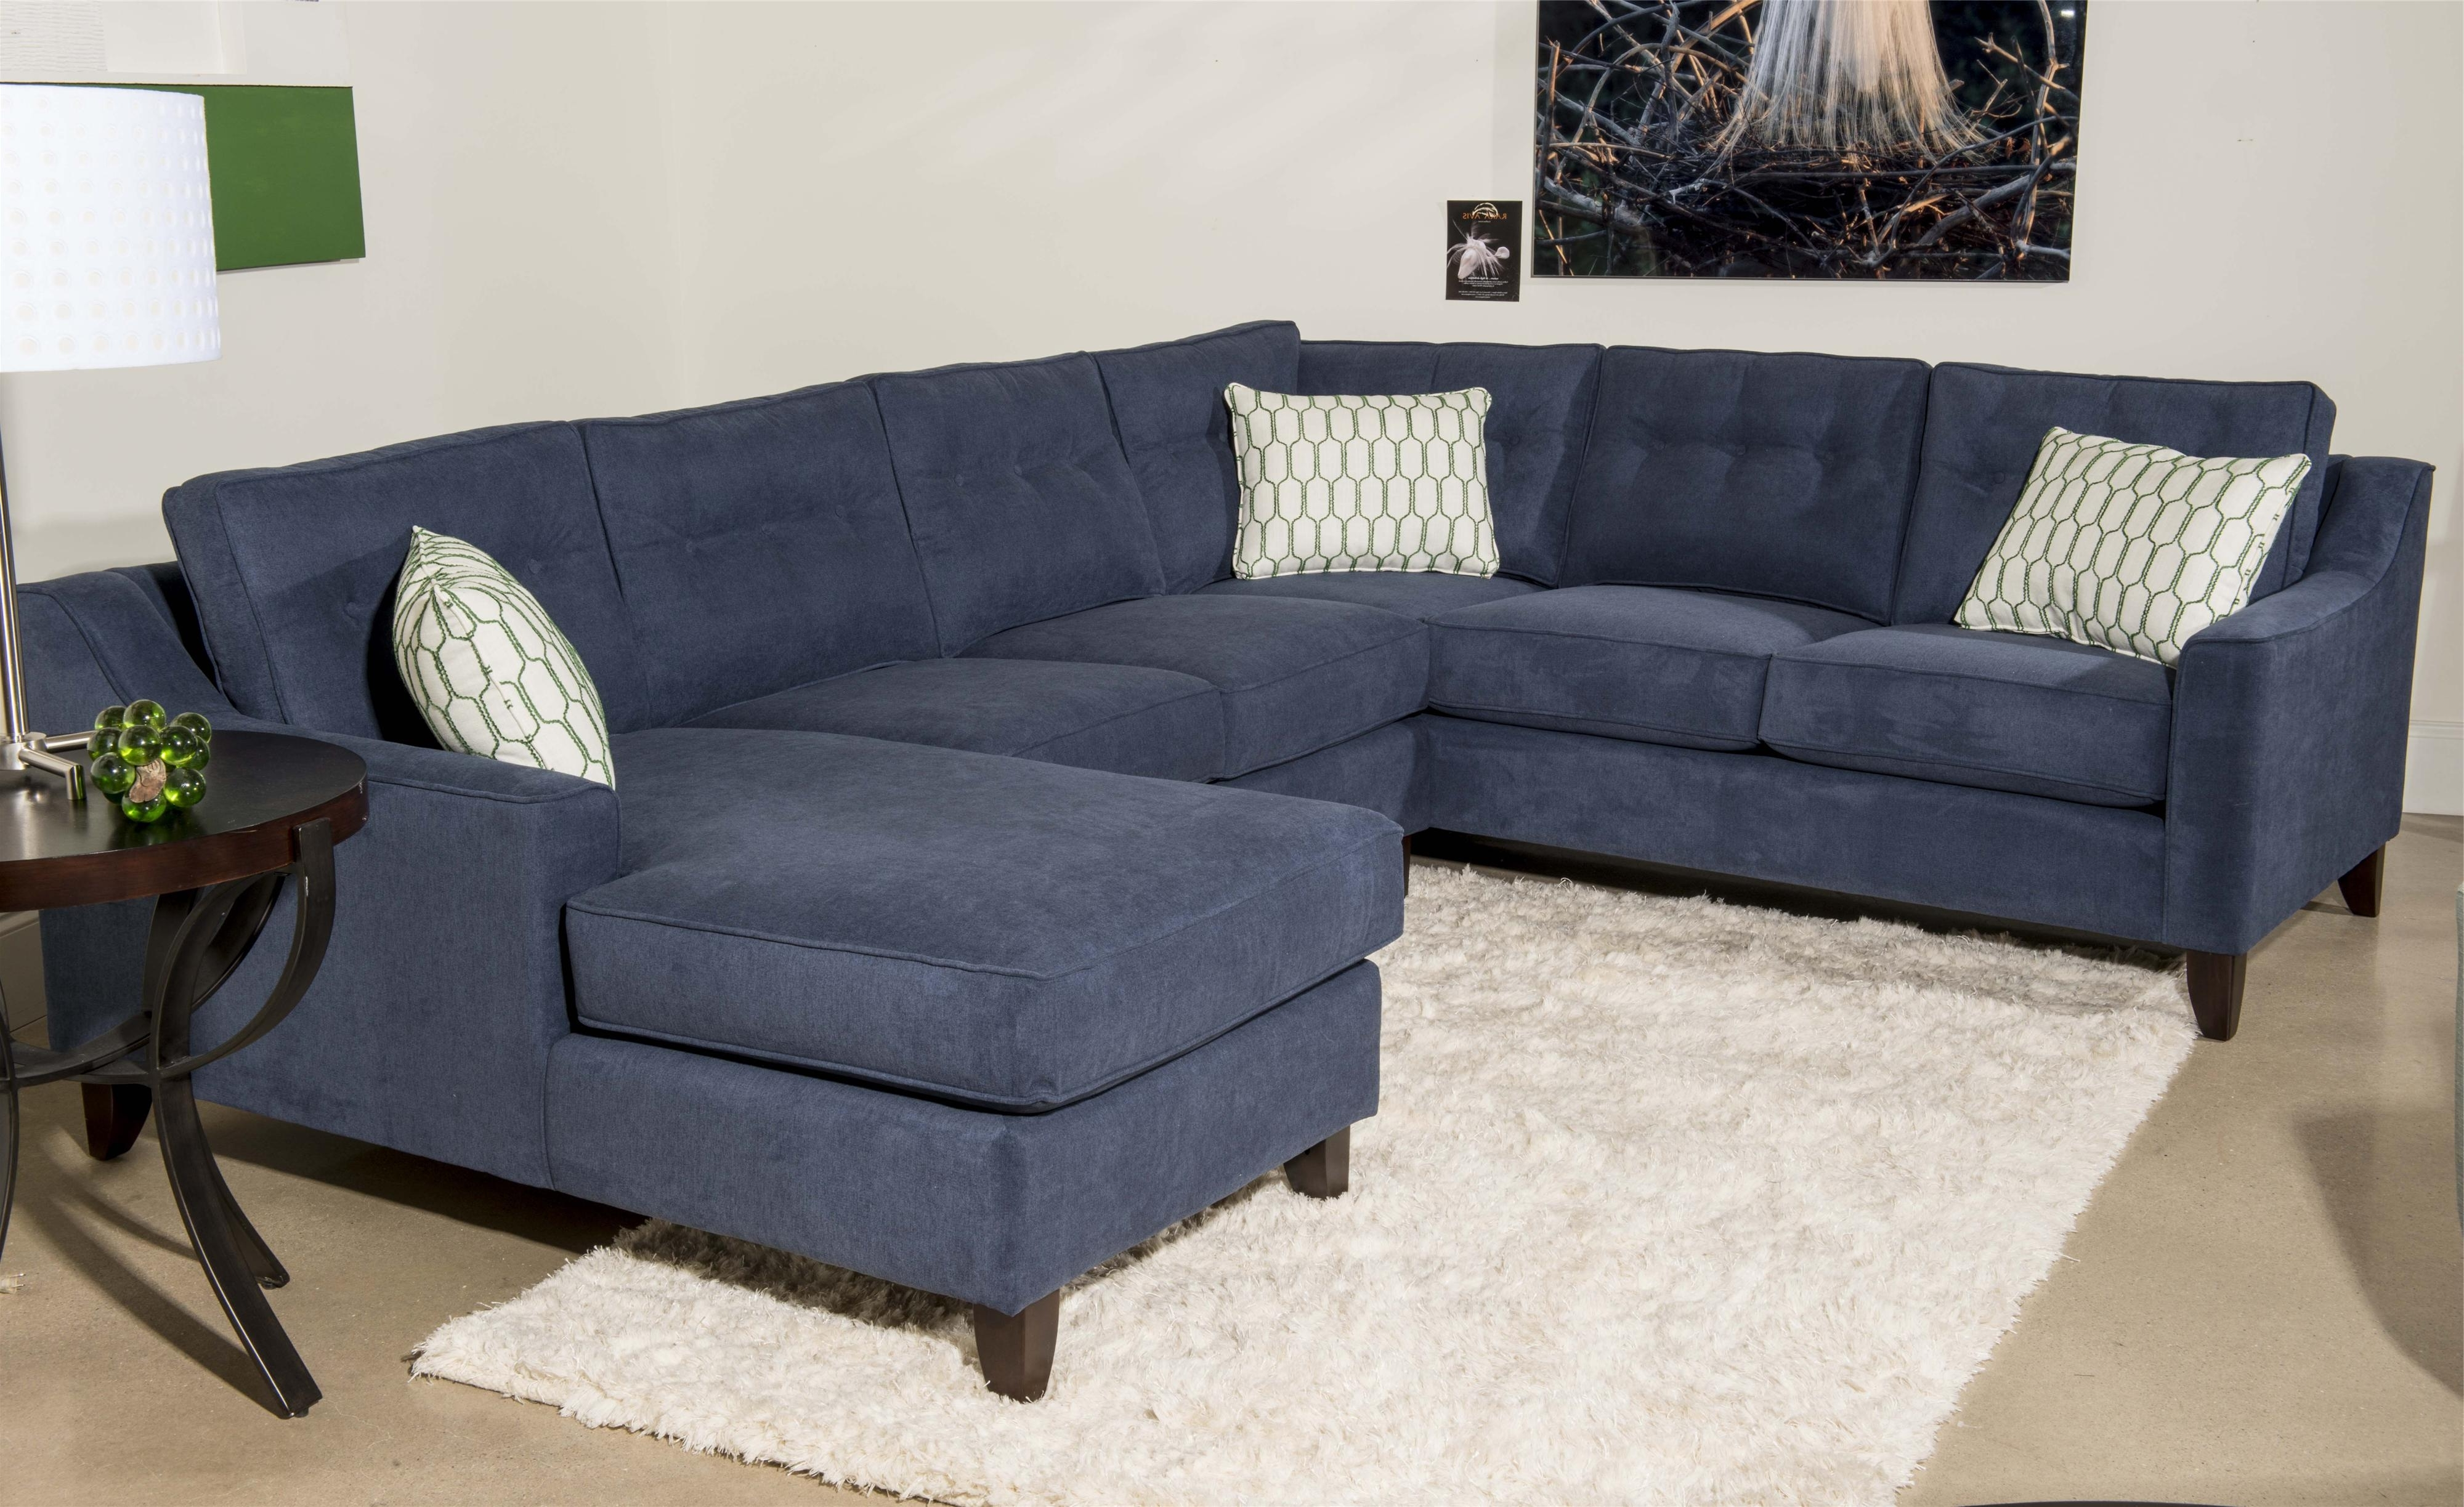 Recent Klaussner Audrina Contemporary 3 Piece Sectional Sofa With Chaise Throughout Chaise Sofa Sectionals (View 11 of 15)